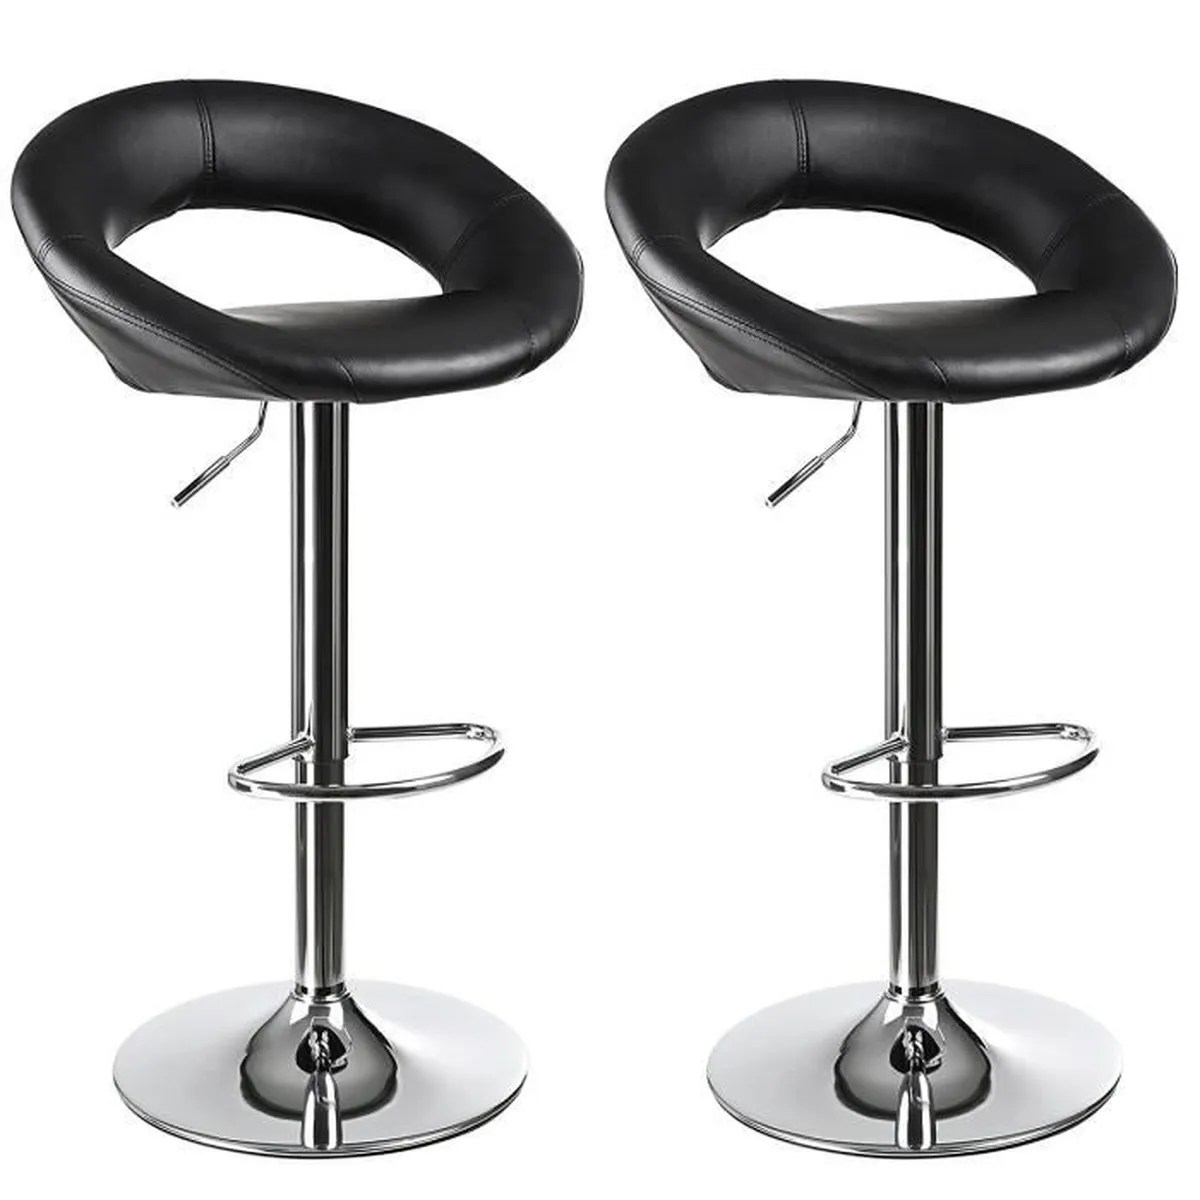 Fauteuils - Tabourets - Chaises Tabourets - Chaises Tabouret Songmics Lot De 2 Tabourets De Bar Haut Chaise De Bar Pu Chrome